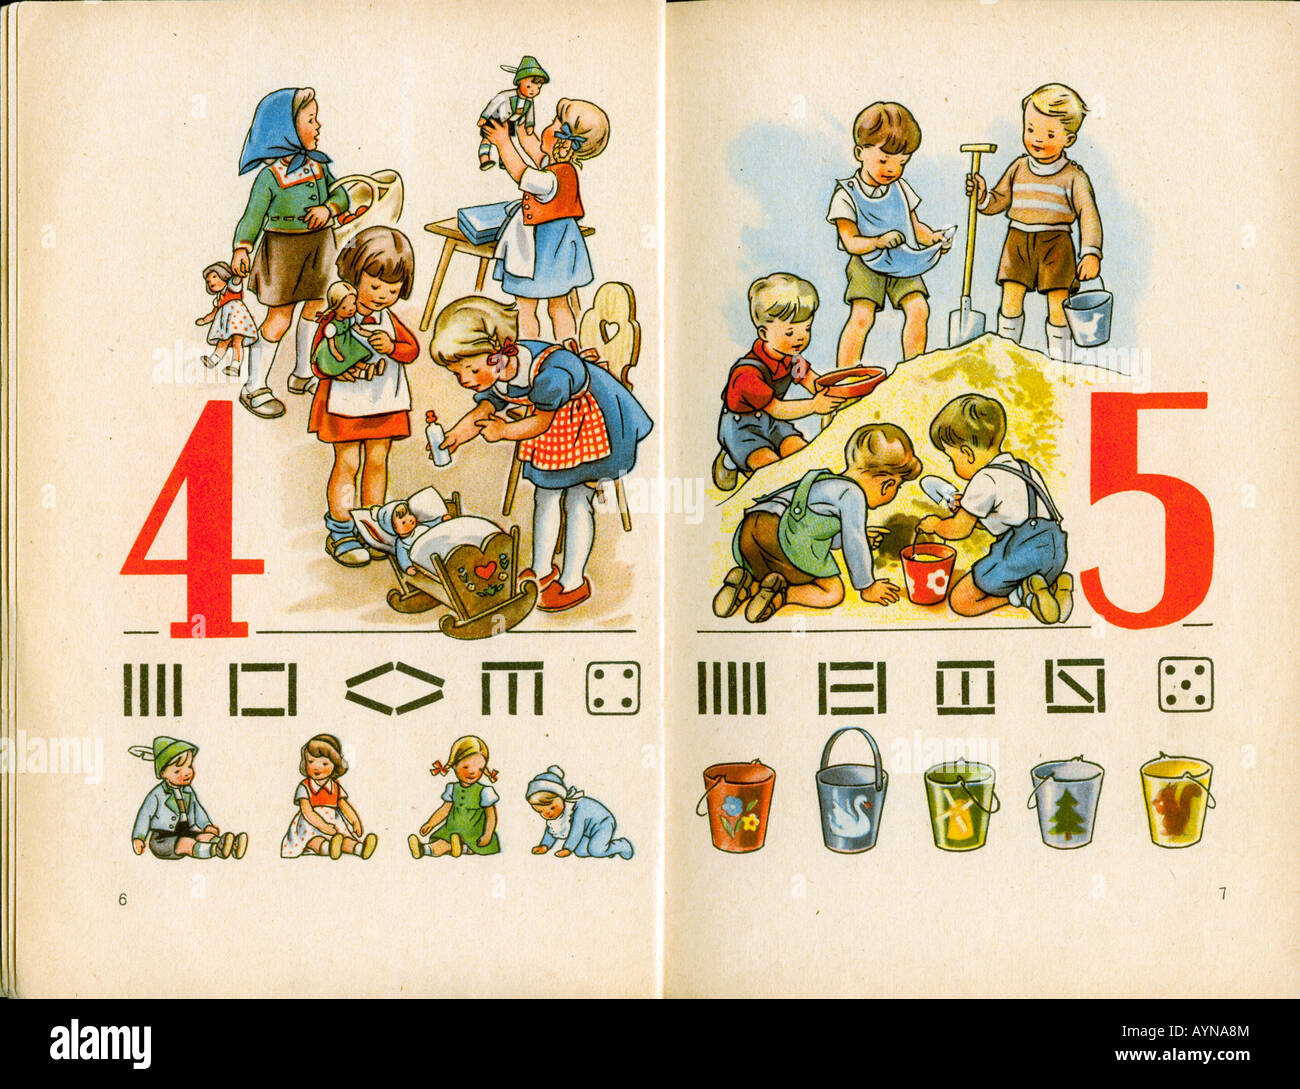 education, educational material, school book 'Leben und Zahl' (Life and figure), 1st form, publishing house - Stock Image